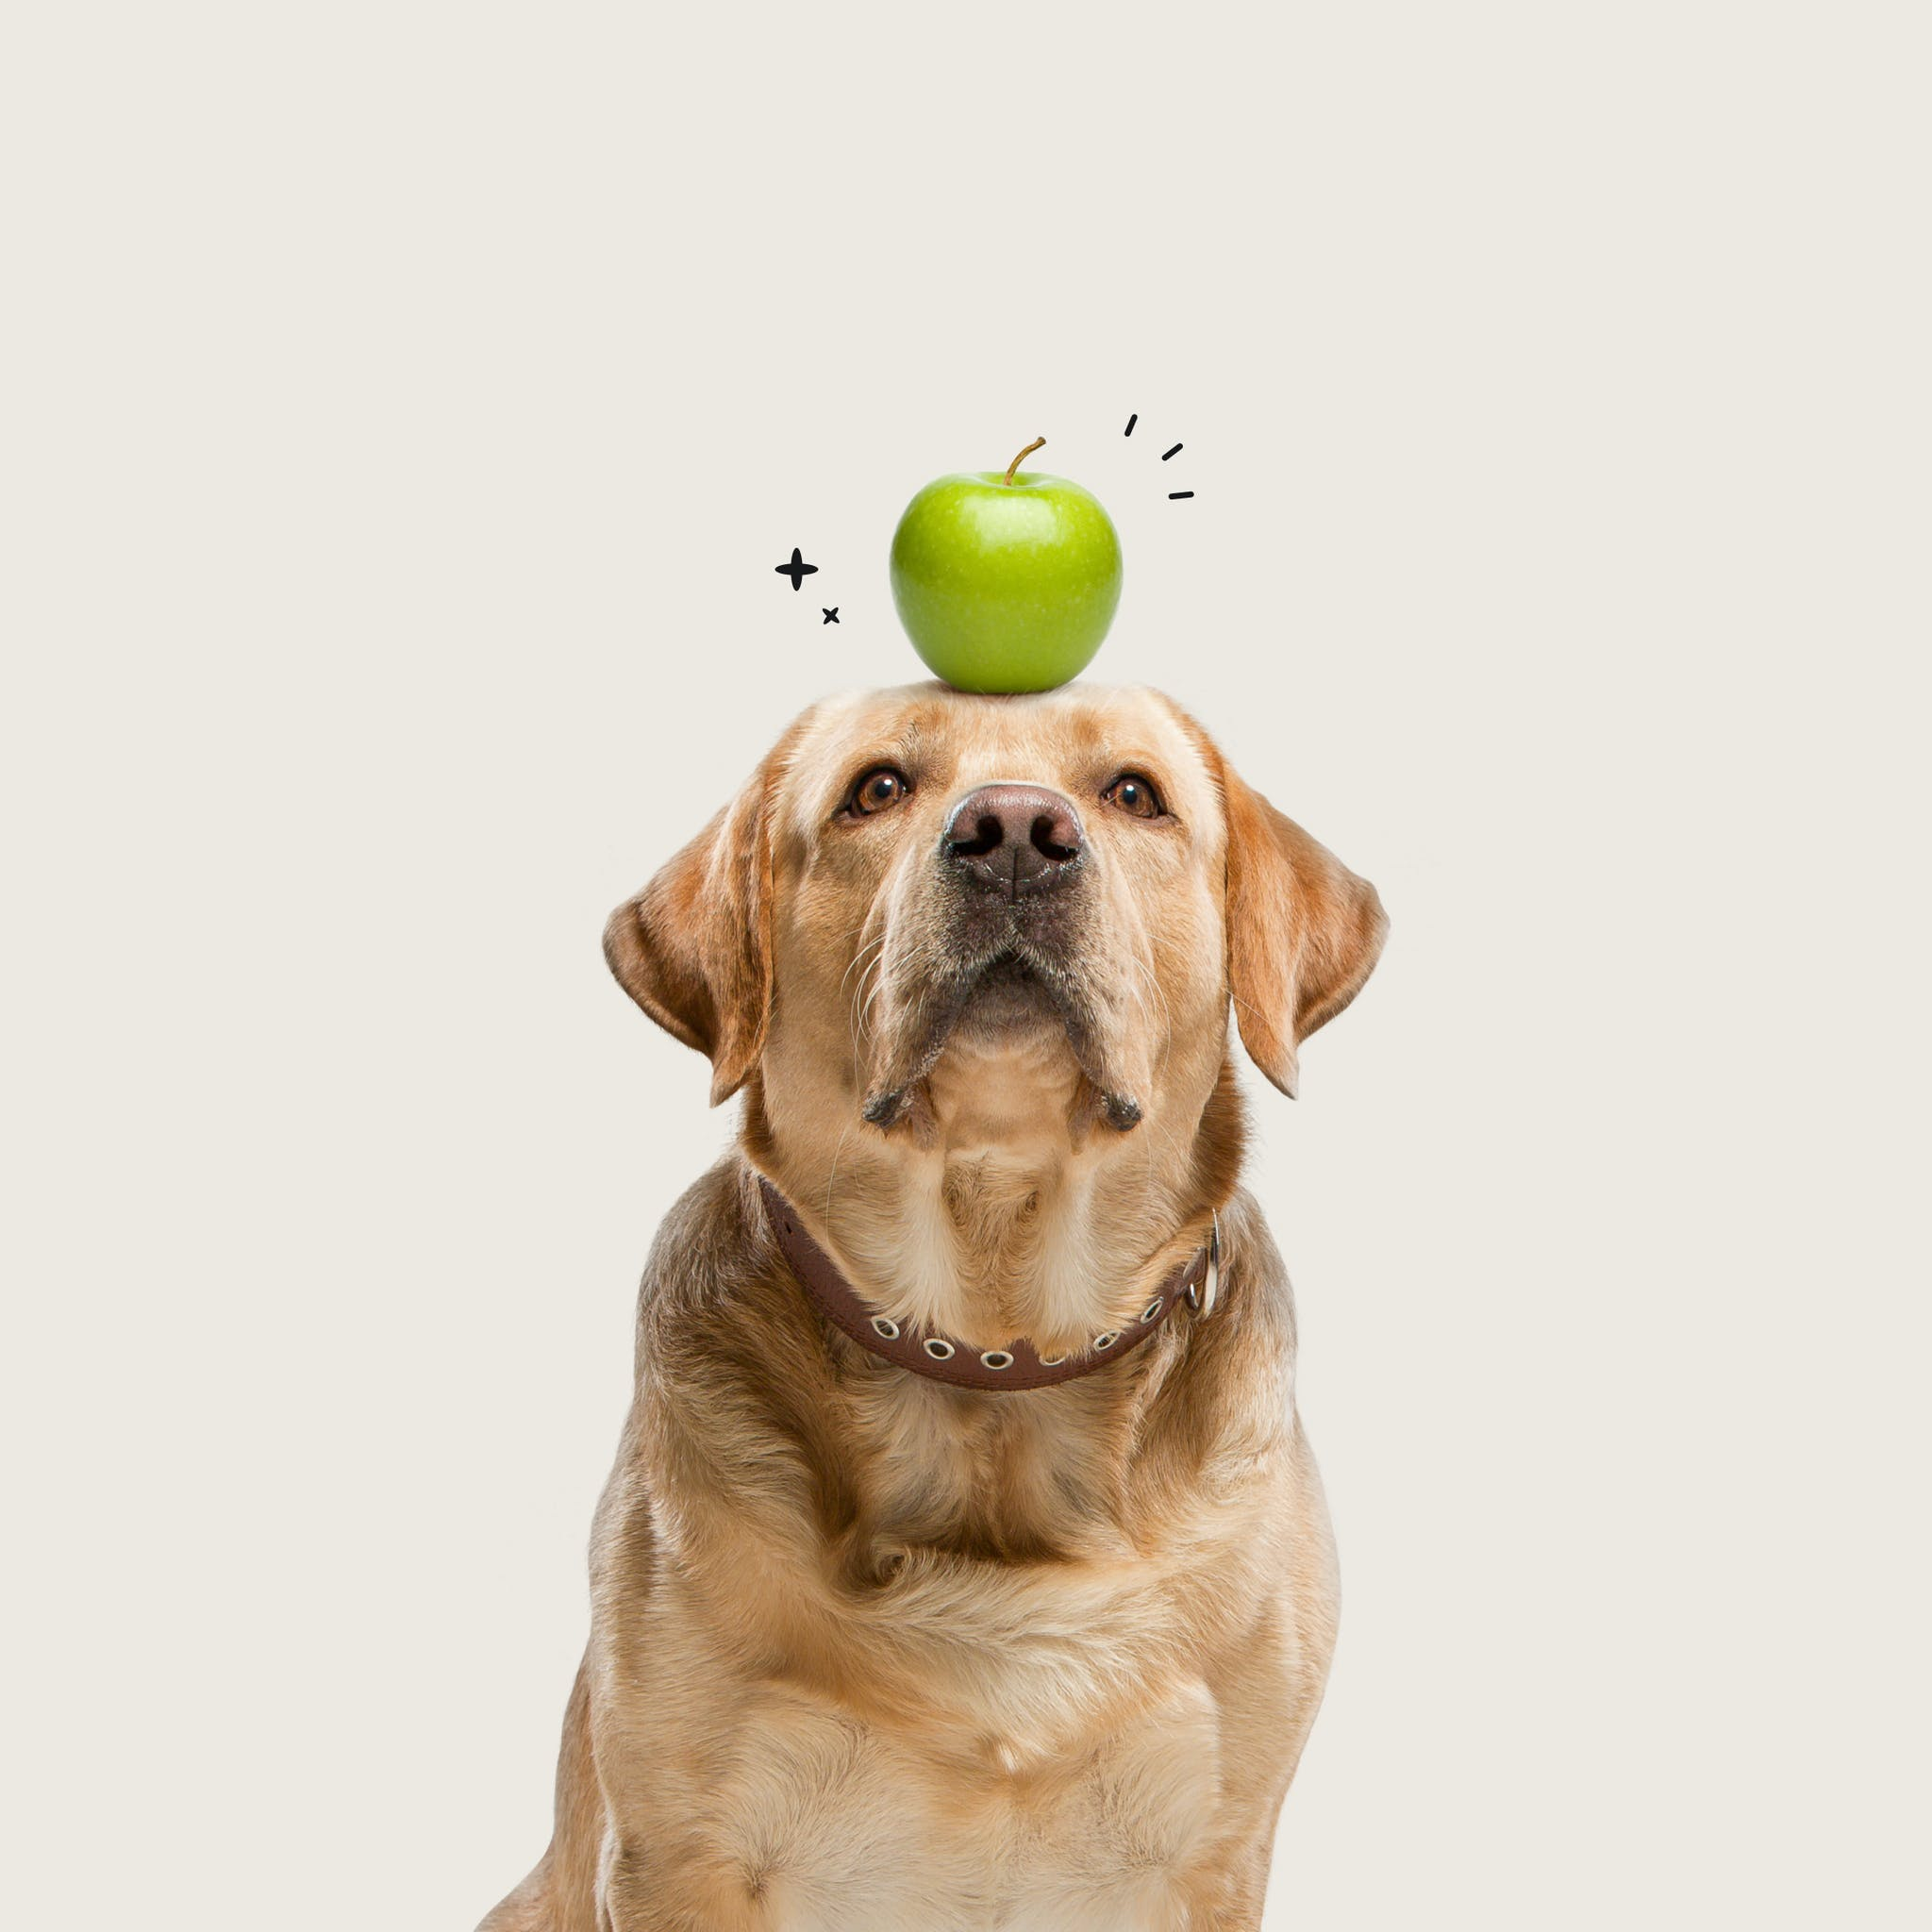 Just Food For Dogs project thumbnail: A golden retriever with a green apple on it's head